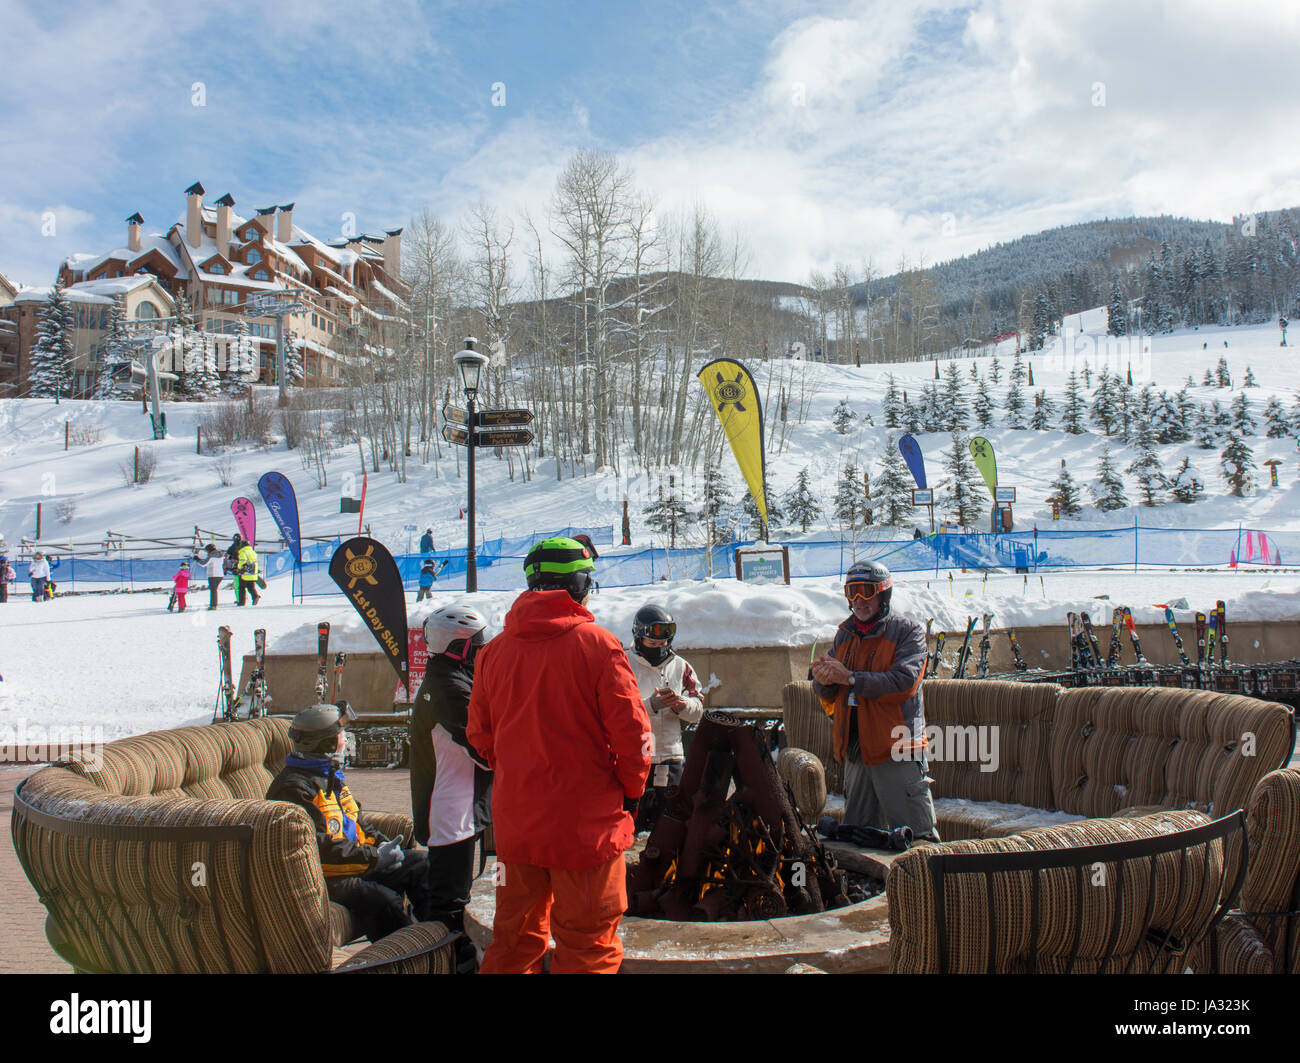 Skiers take a break around an outdoor fire at Beaver Creek, a ski resort near Avon, Colorado. - Stock Image